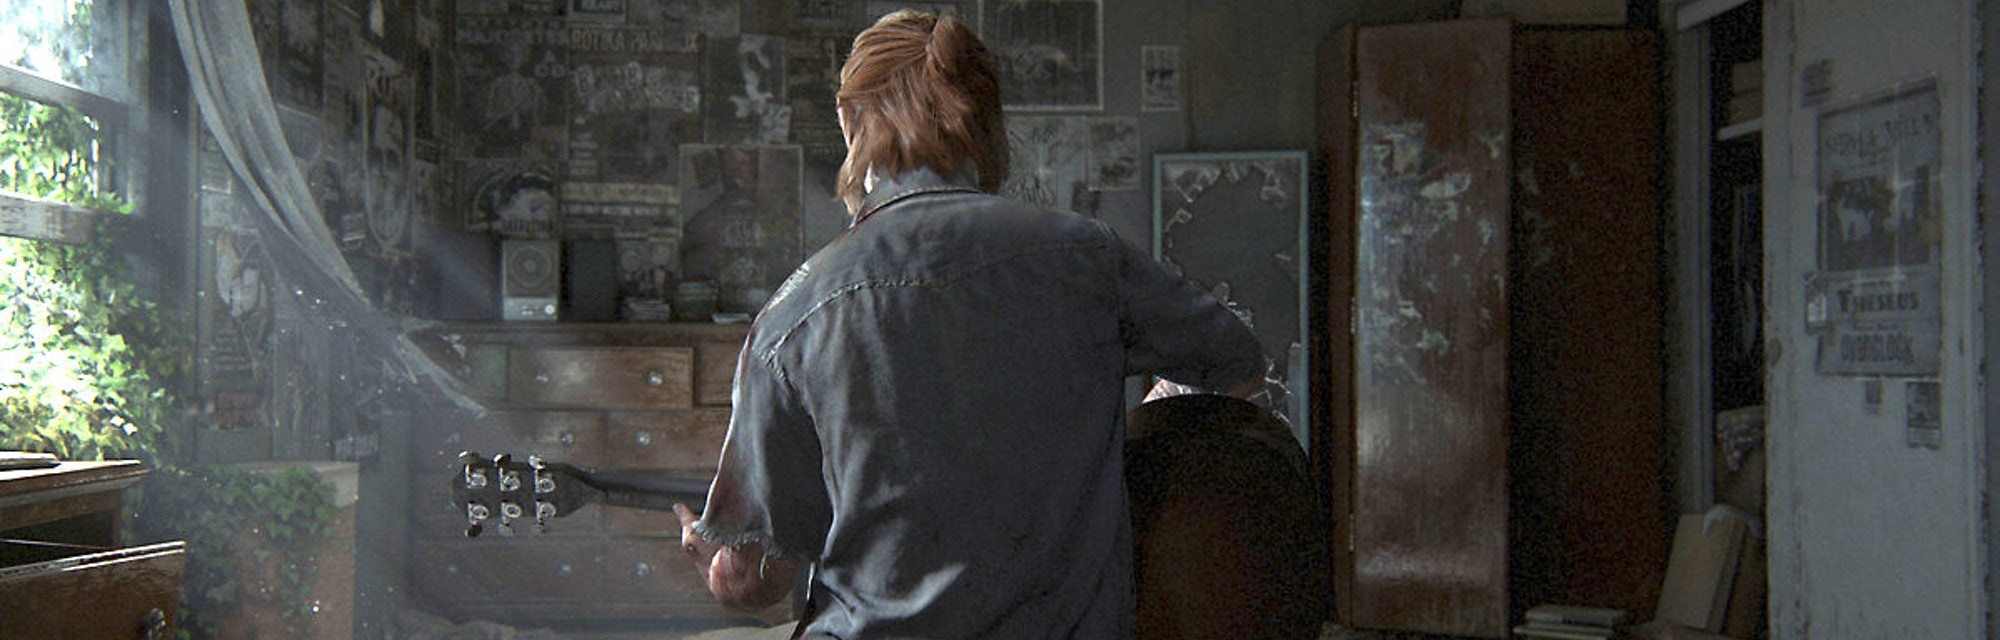 Ellie in a quiet moment of 'The Last of Us Part II,' out June 19.